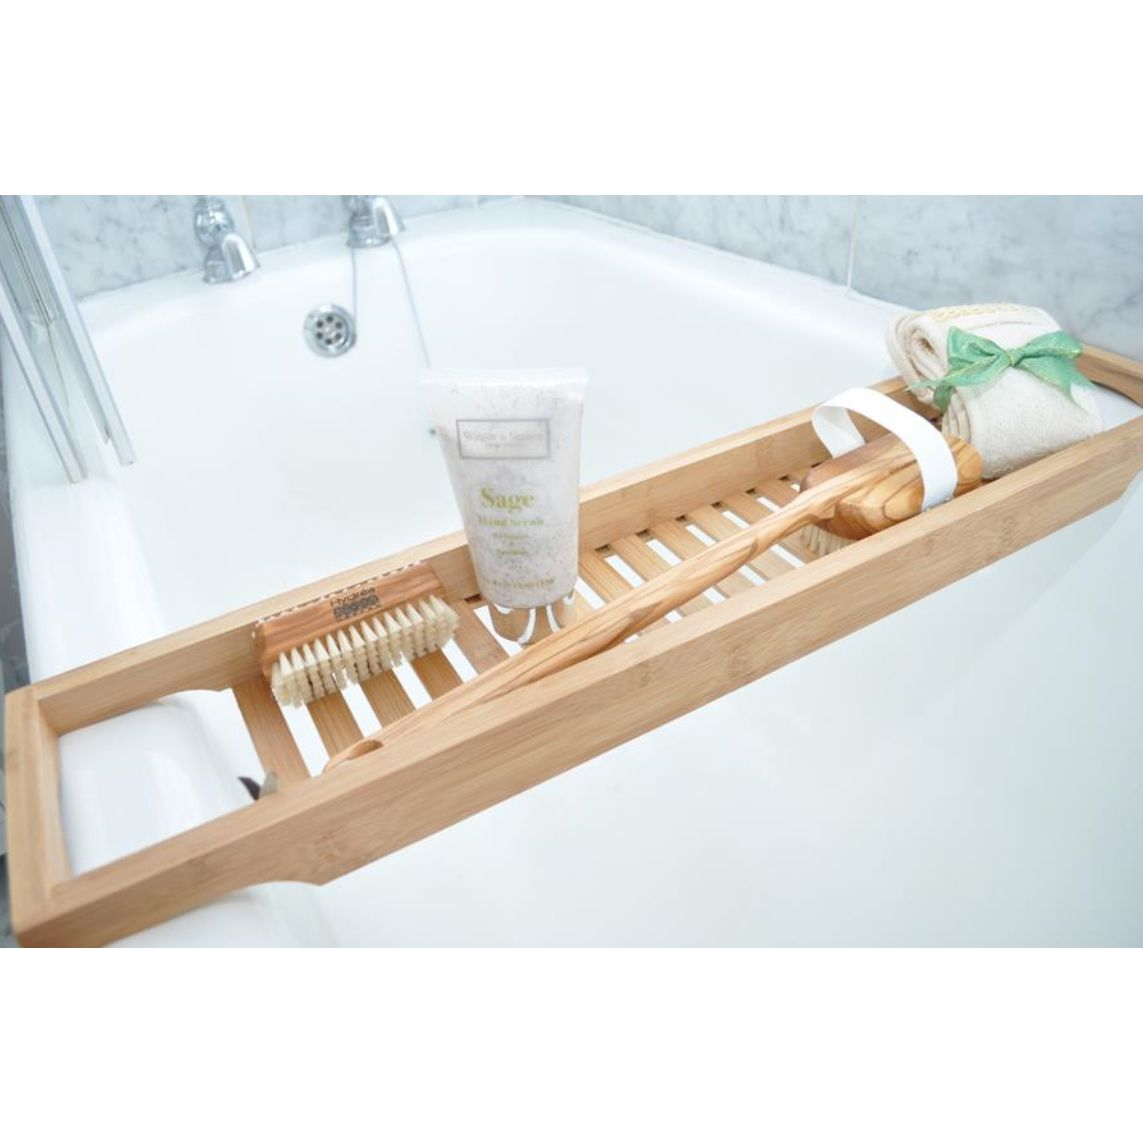 Bath Bridge Bathtub Soap Holder Slim Bamboo Bathroom Accessories ...